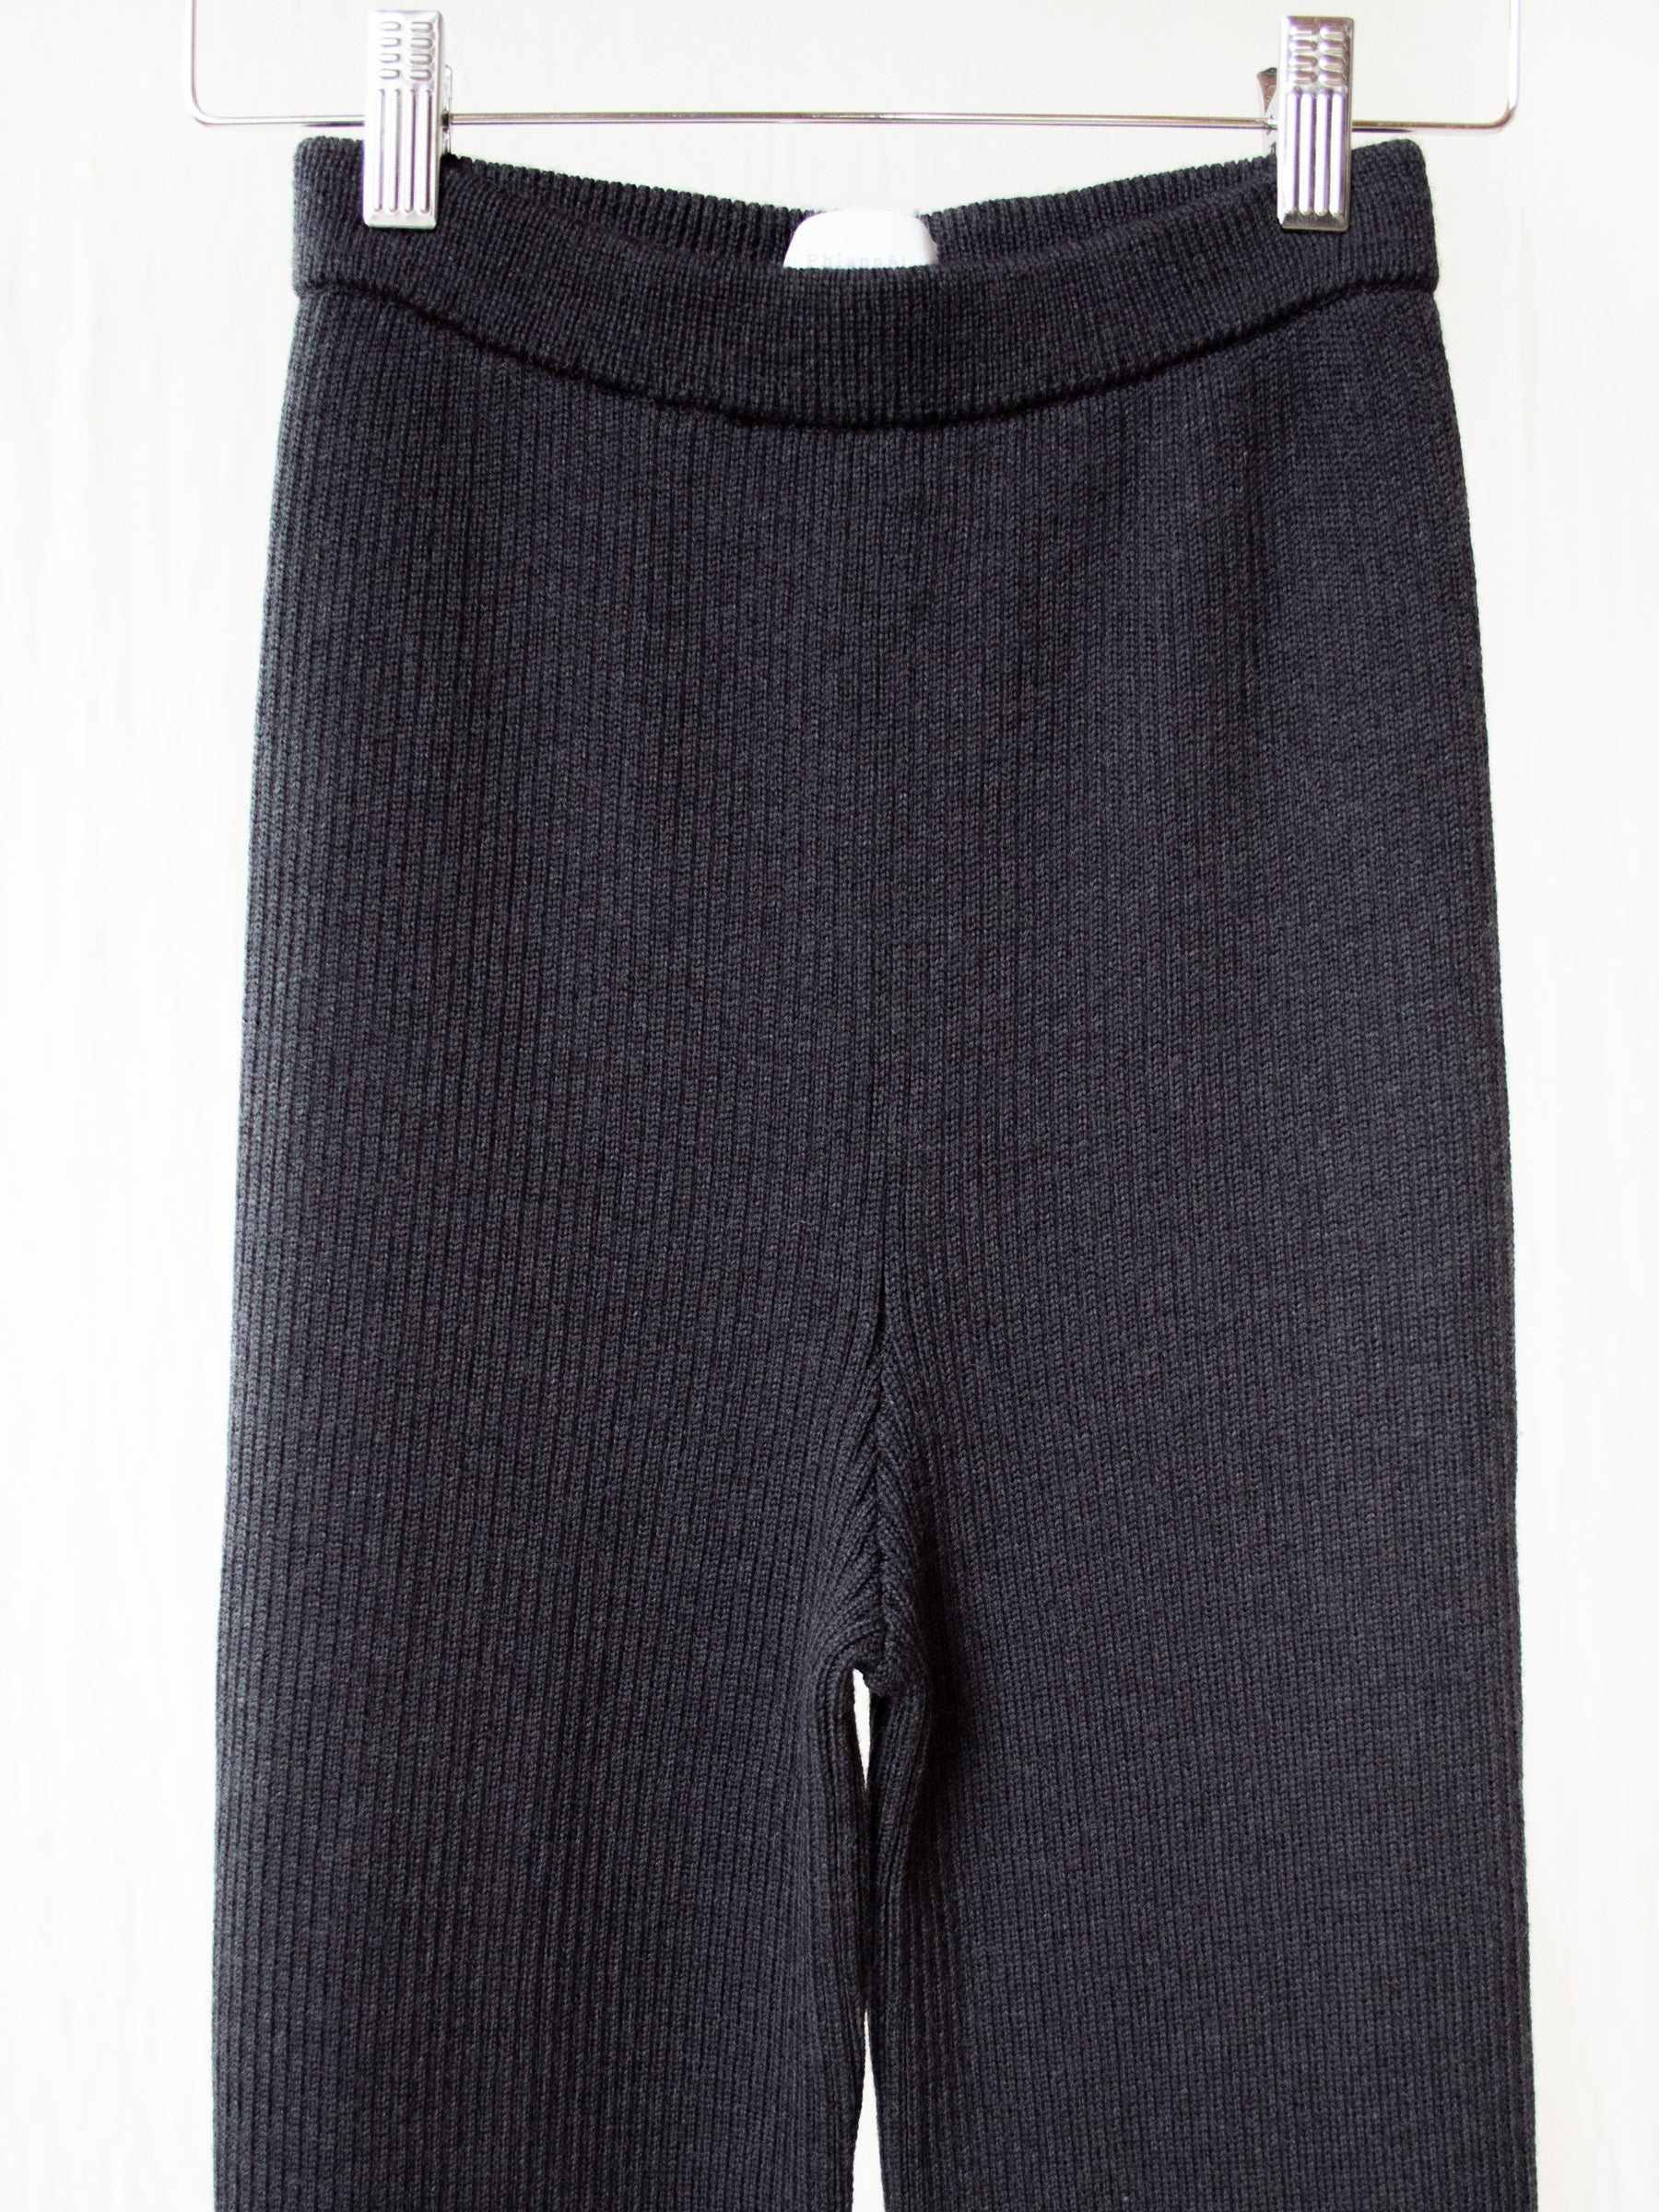 Wool Rib Knit Pants